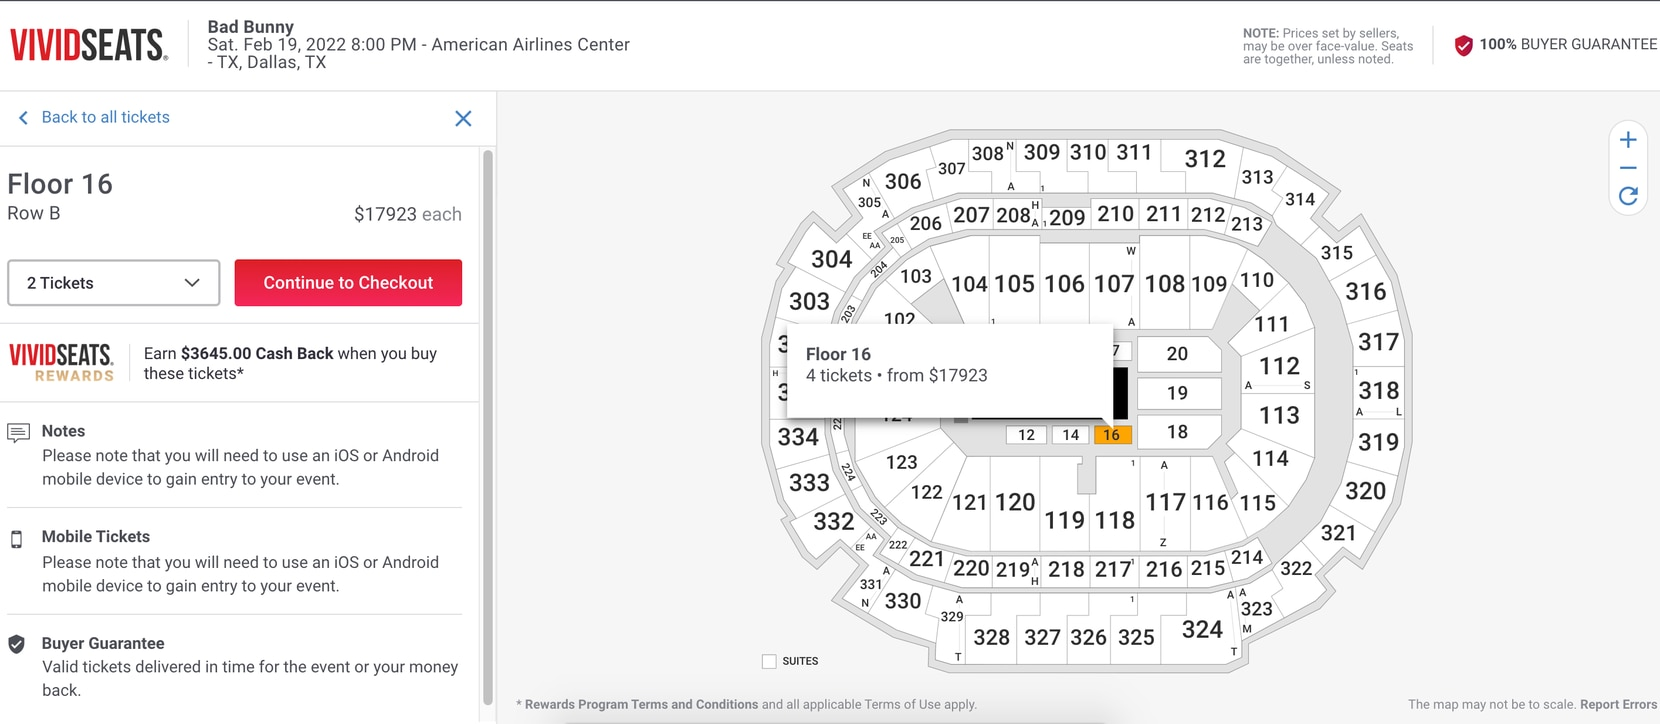 A screenshot from VividSeats shows tickets being resold for up to nearly $18,000 at American Airlines Center.